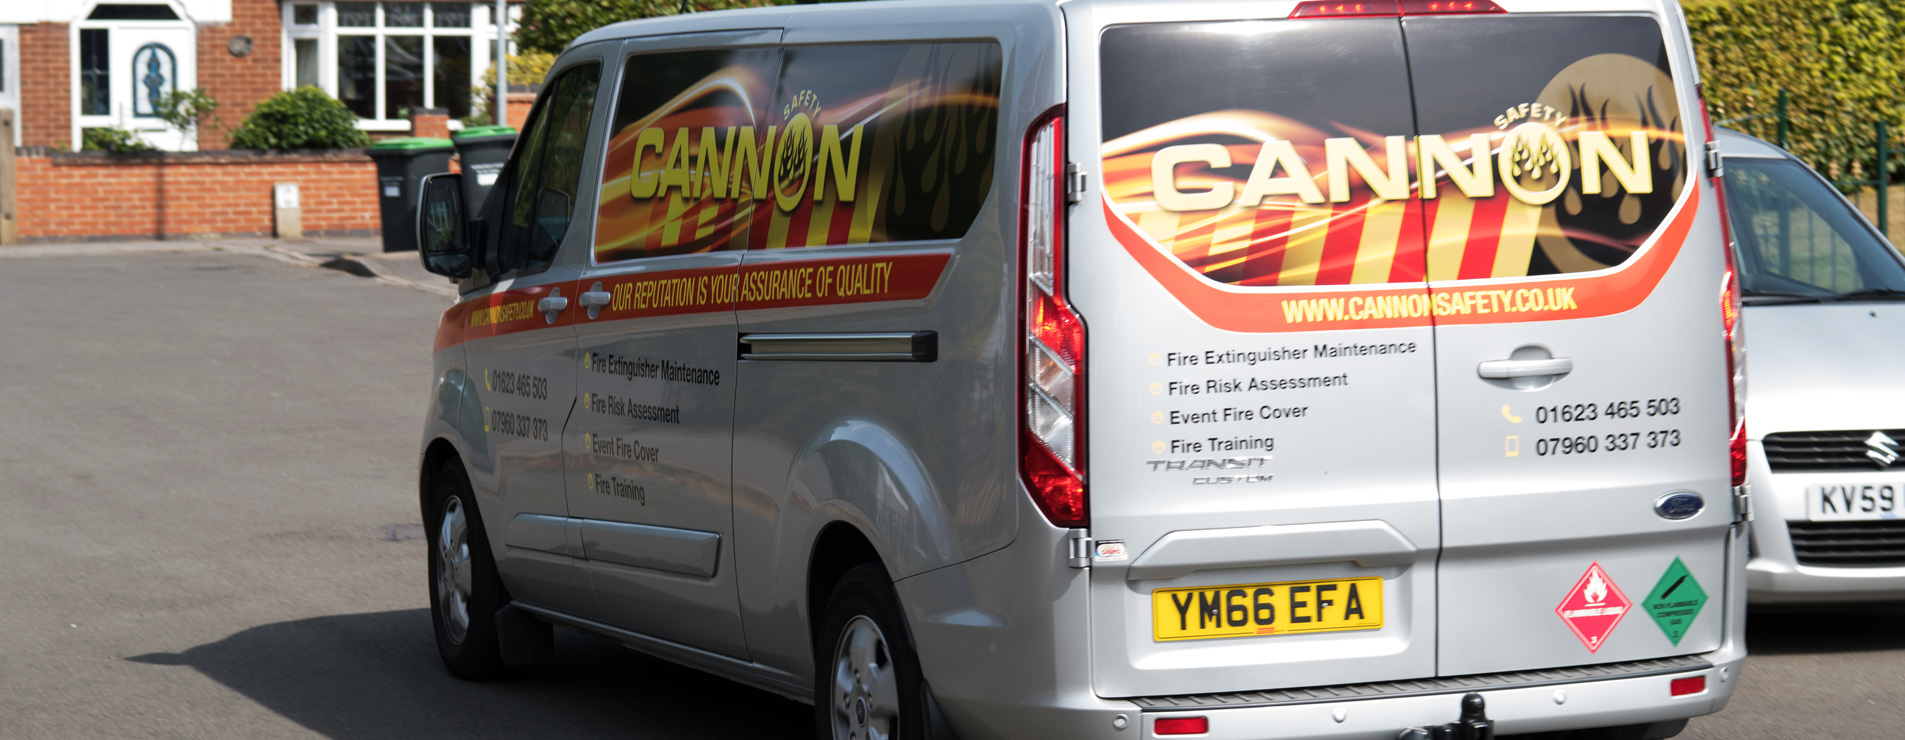 Cannon Safety van